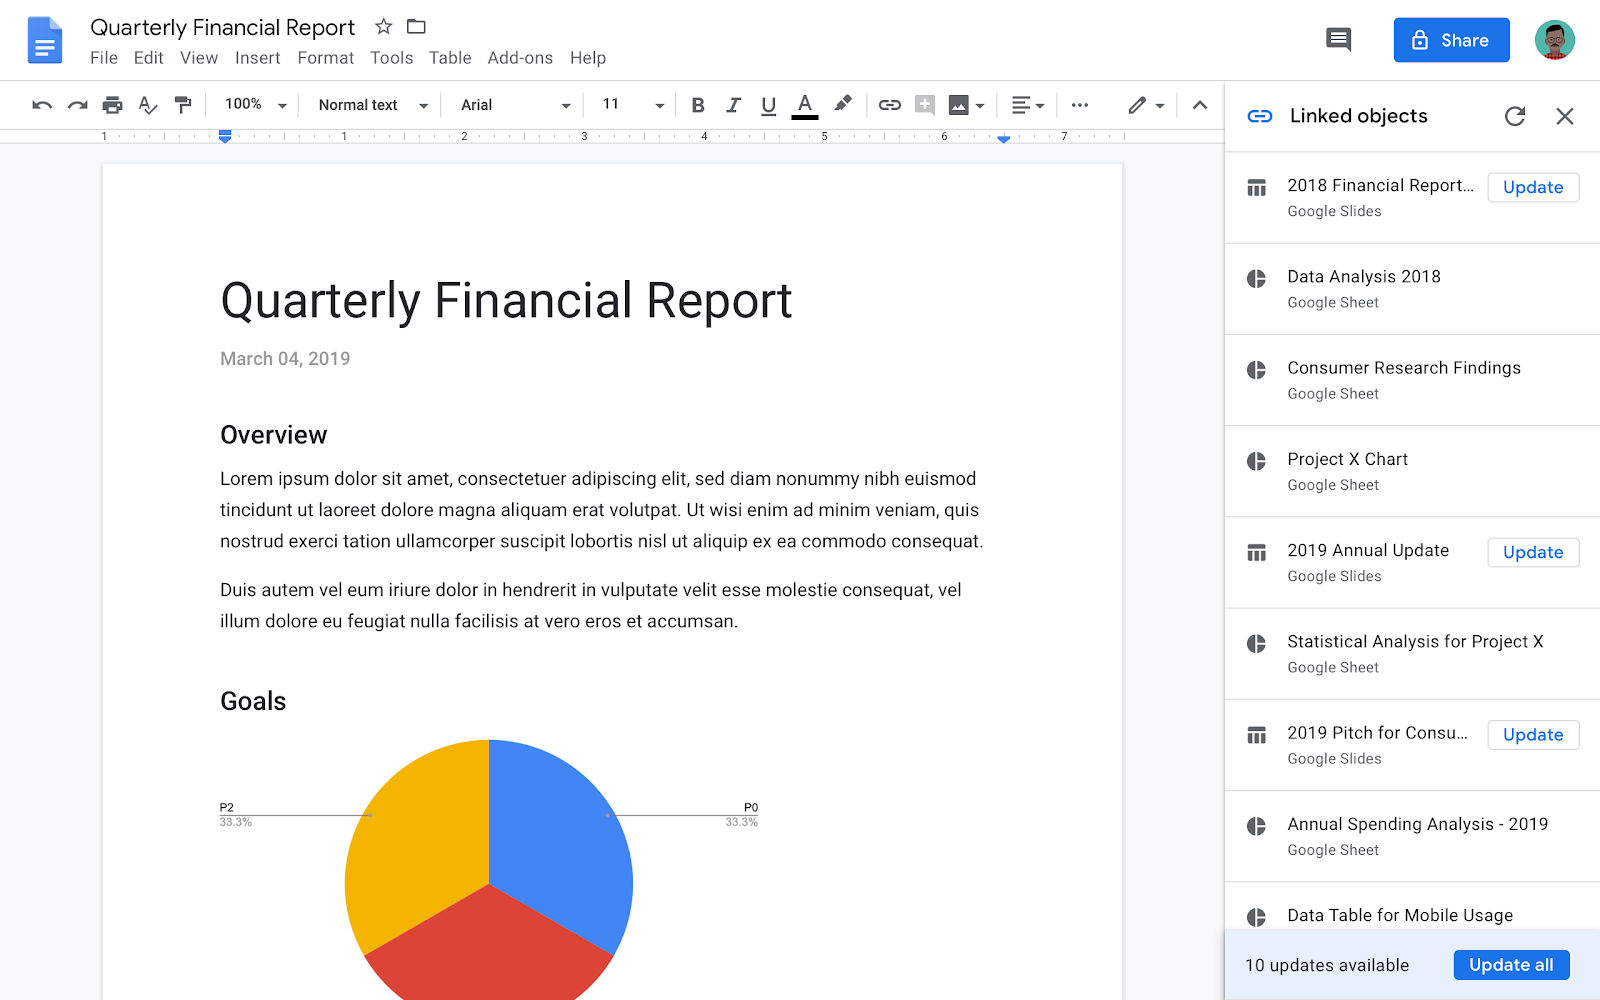 G Suite Updates Blog: Update all linked content with one